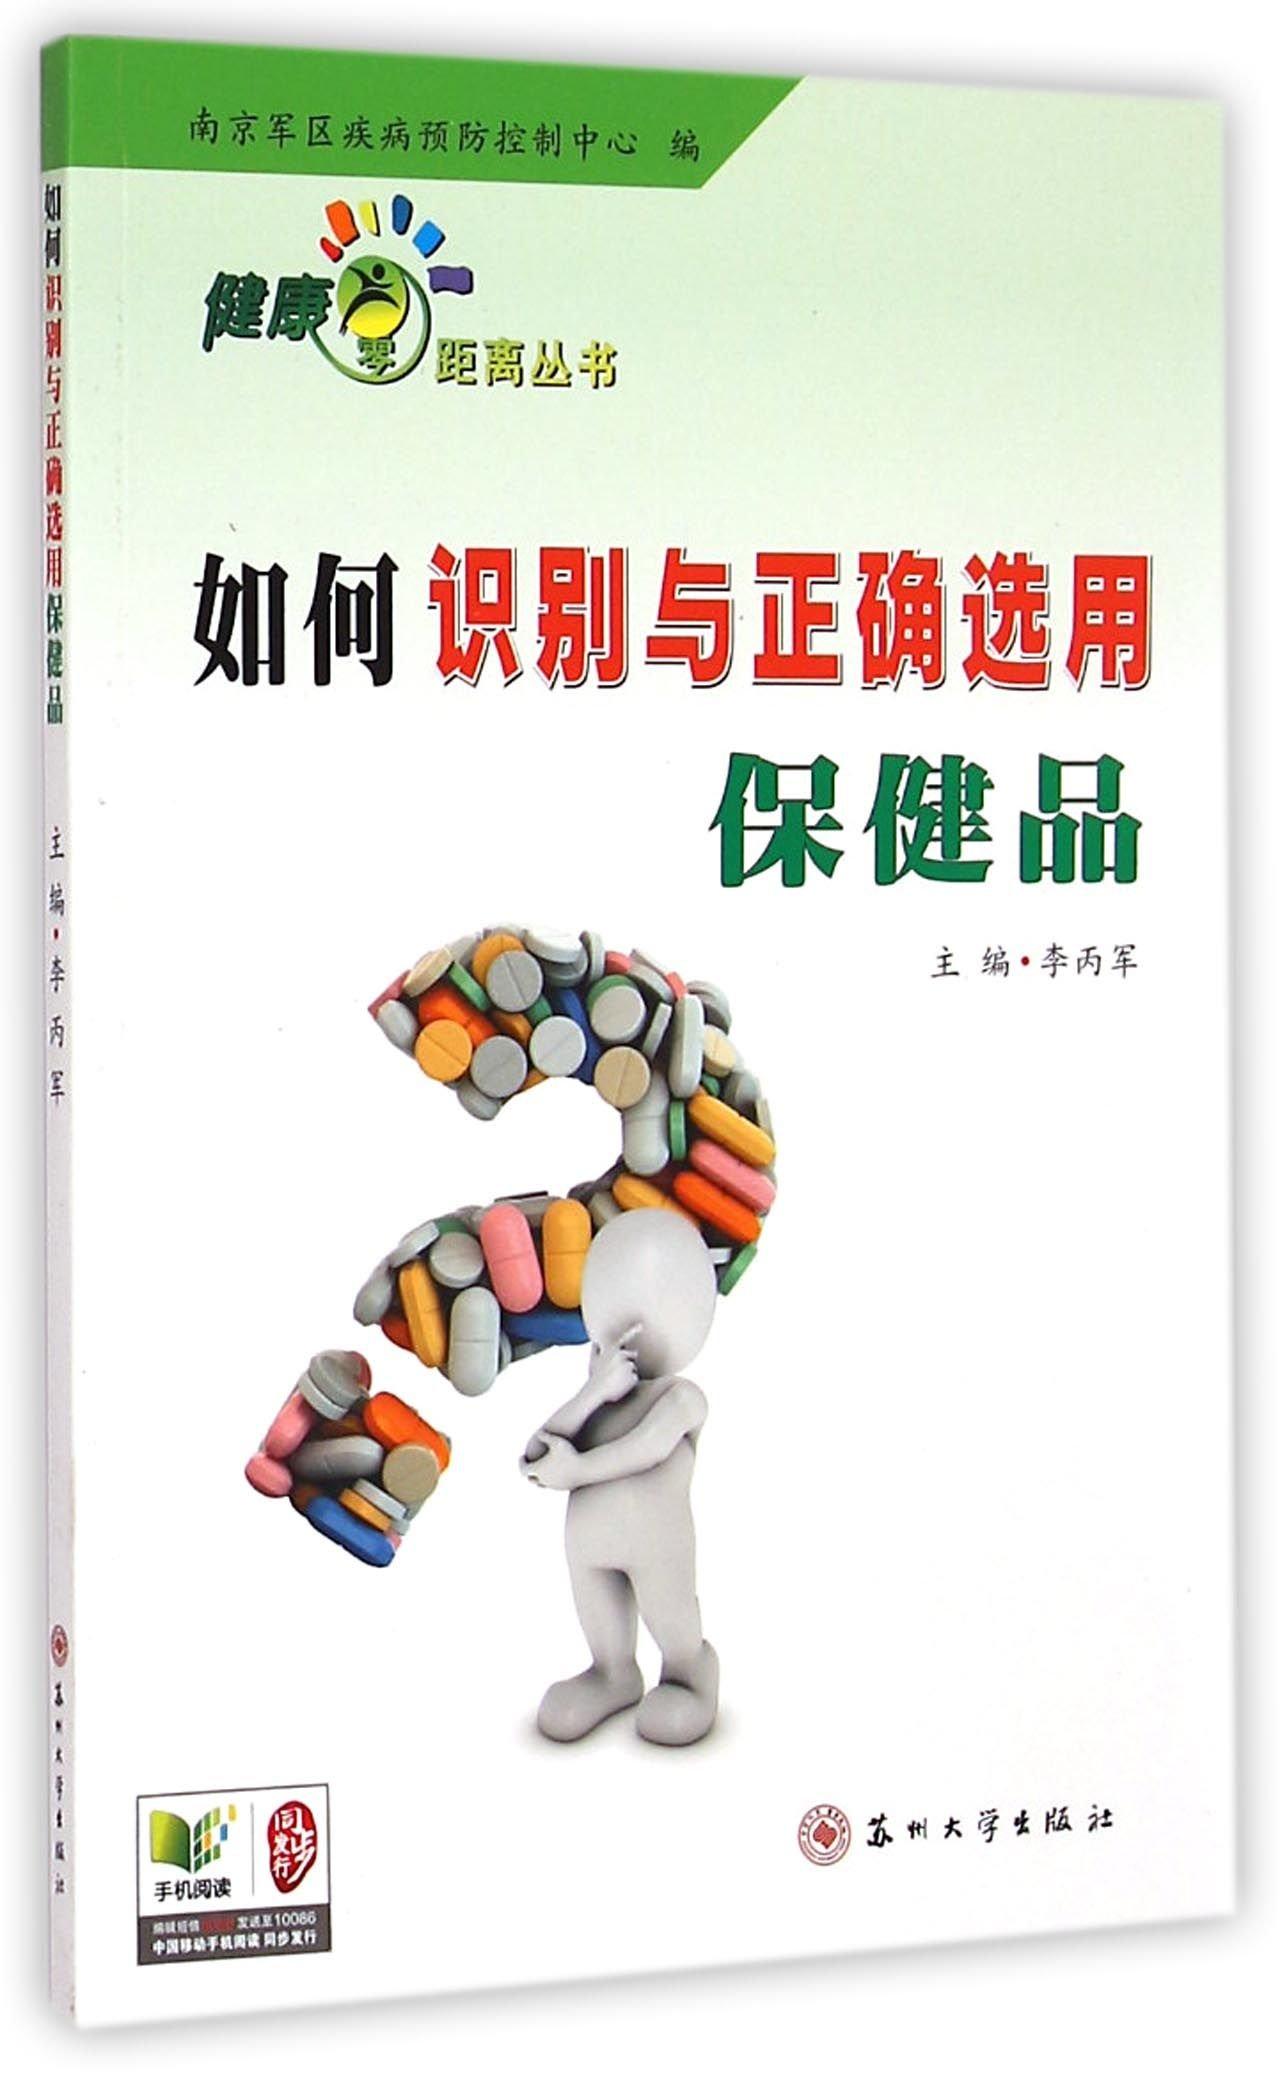 Read Online How to Discern, Select and Use Health Care Products Correctly (Chinese Edition) pdf epub